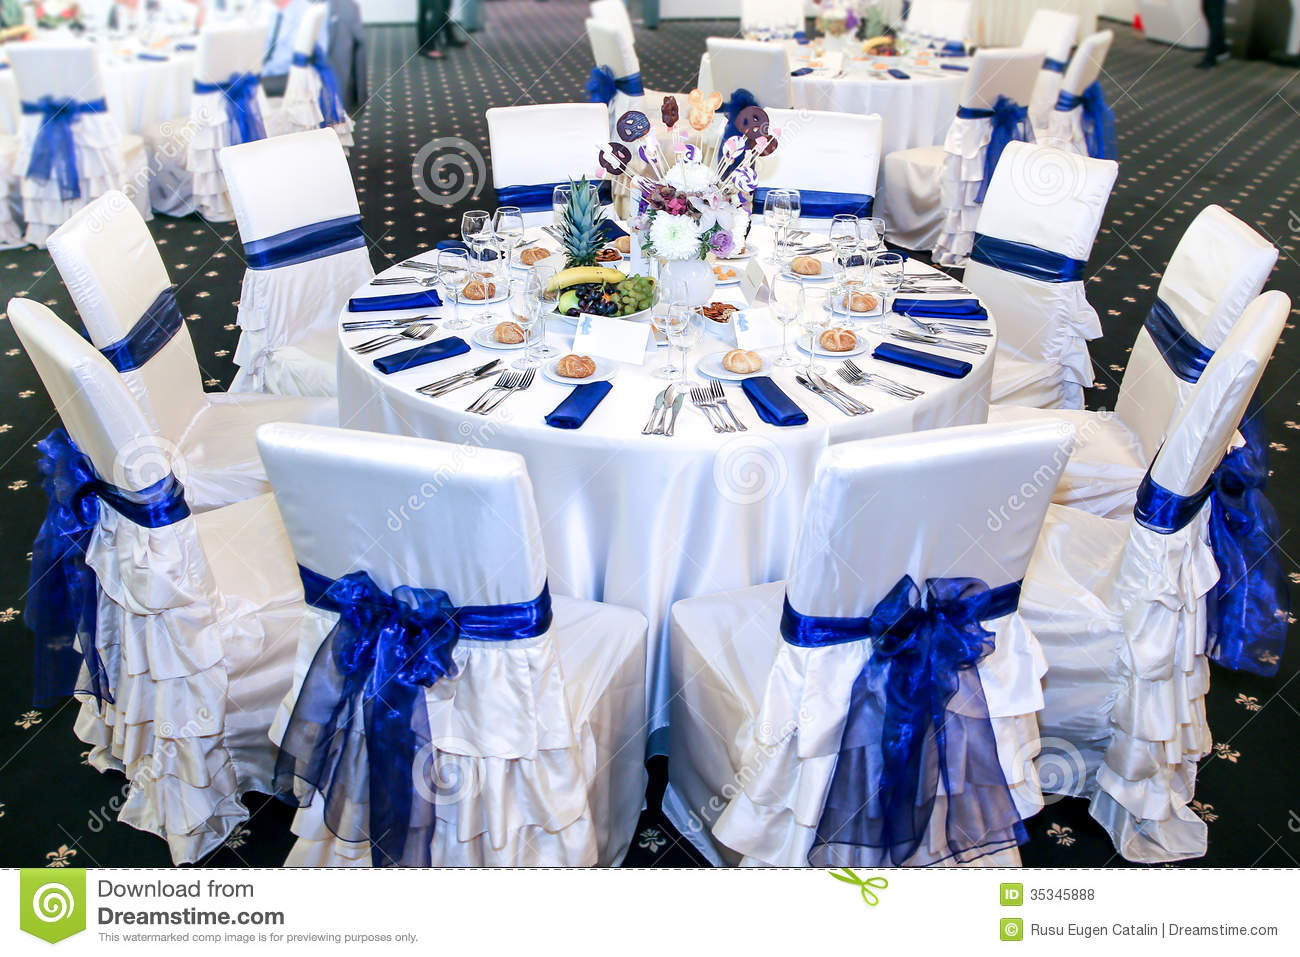 Table Event Royalty Free Stock Photos - Image: 35345888